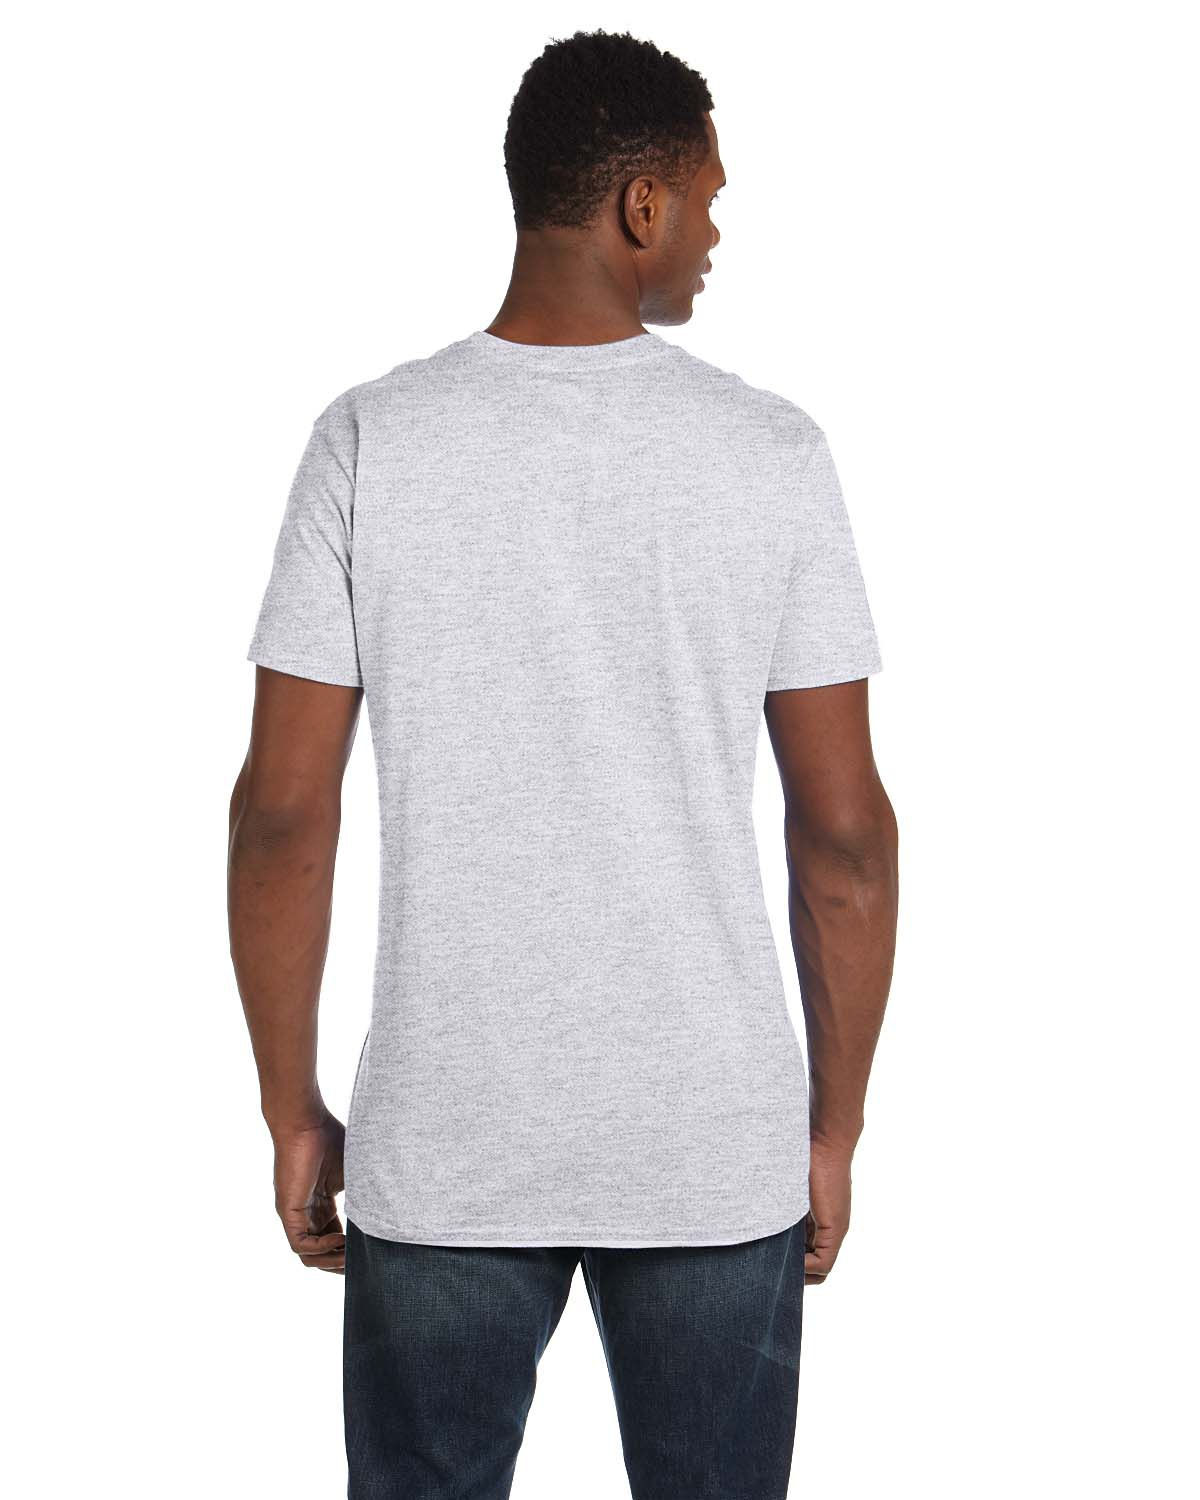 'Hanes 4980 Adult Ringspun Cotton nano-T T-Shirt'